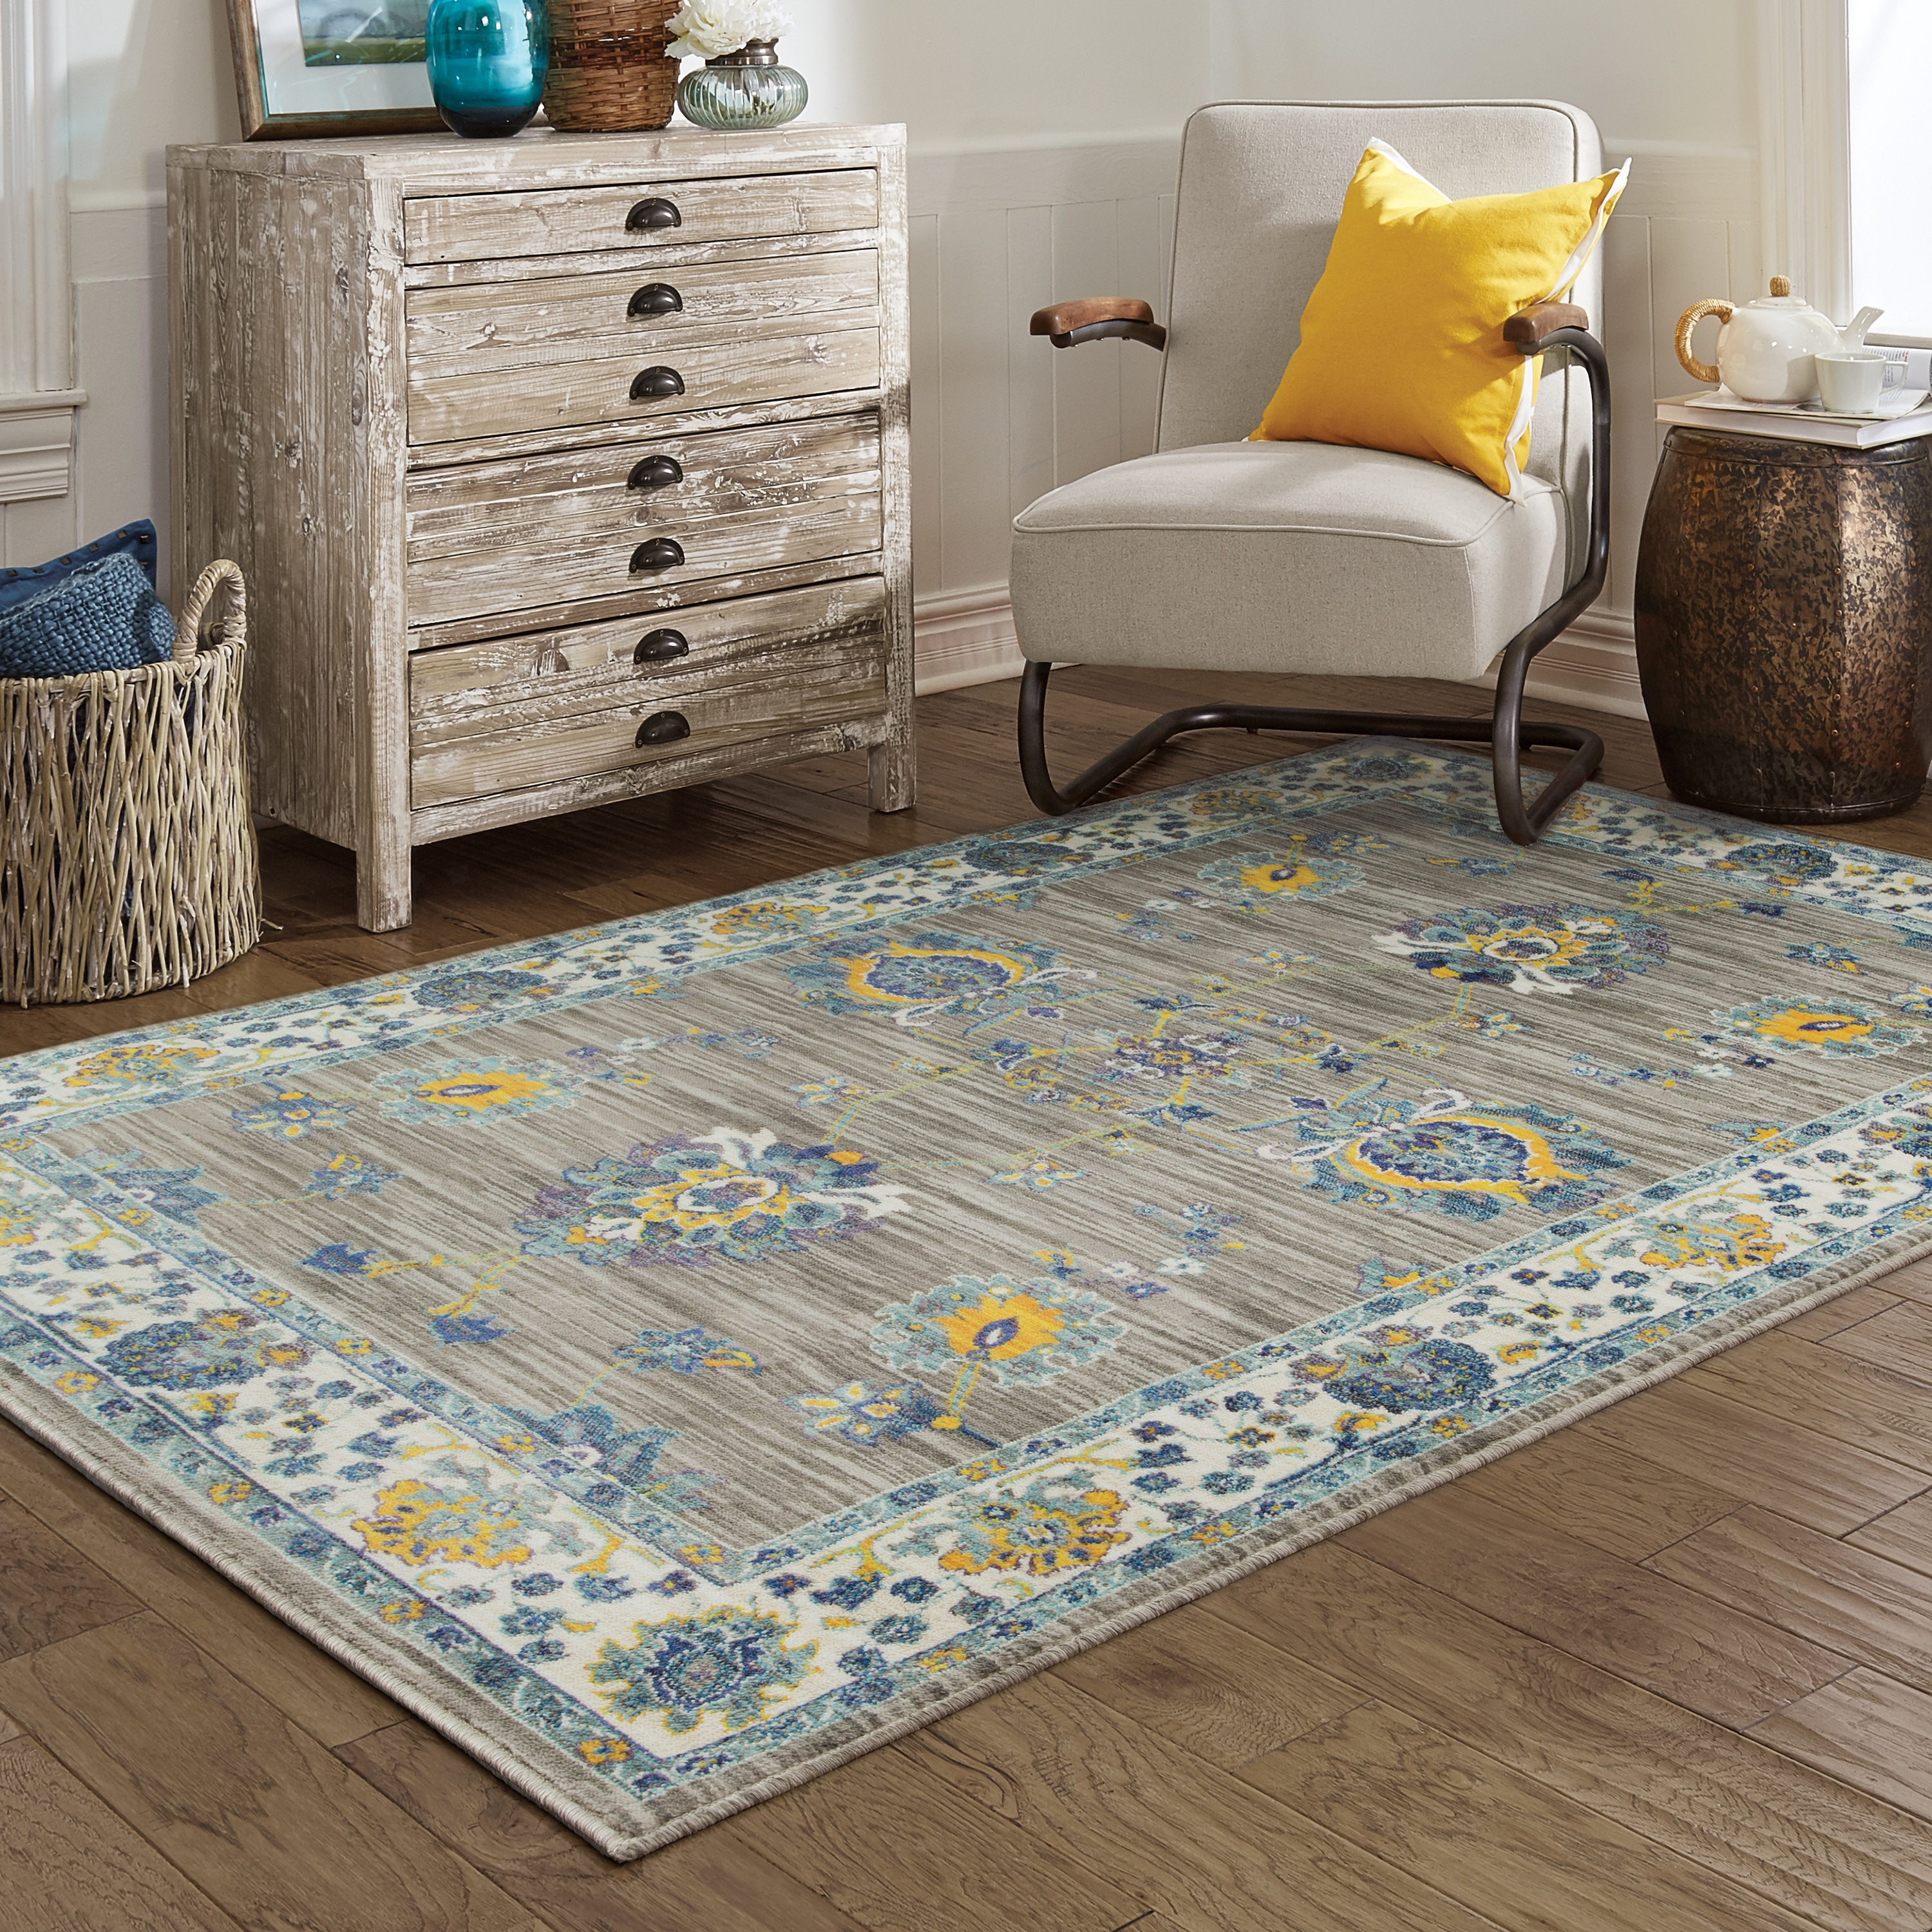 pattern country simply shaped hand flower ideas black decor chic area shabby by lowes grey french blue for decorating sunflower rug decoration yellow blantyre and ikea momeni wonderful floor tufted floral persian hampen rugs with tan cool